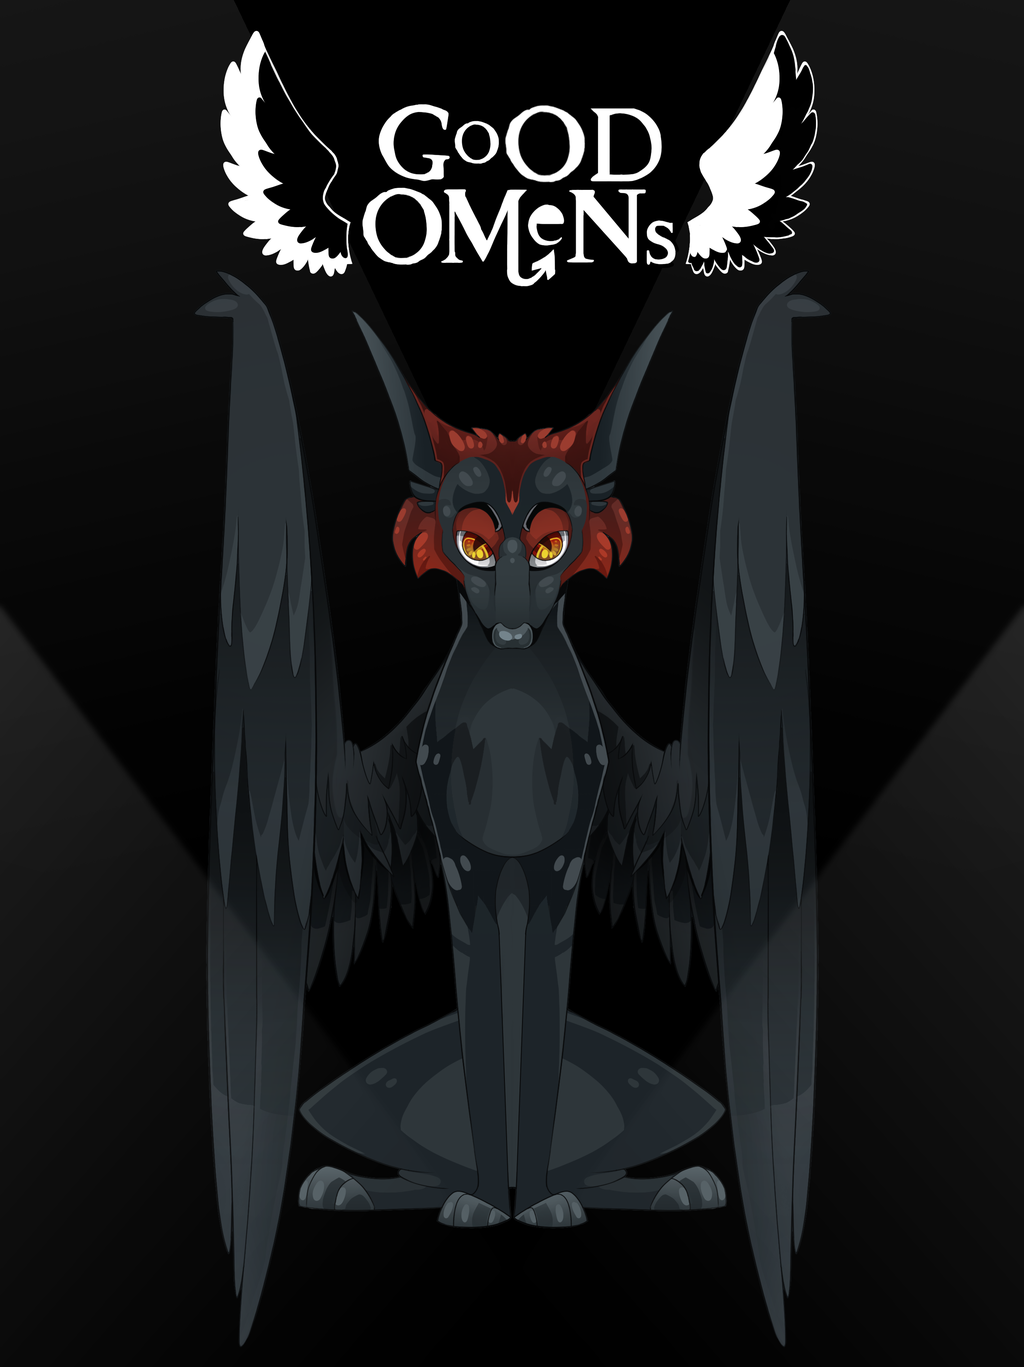 Crowley: Good Omens